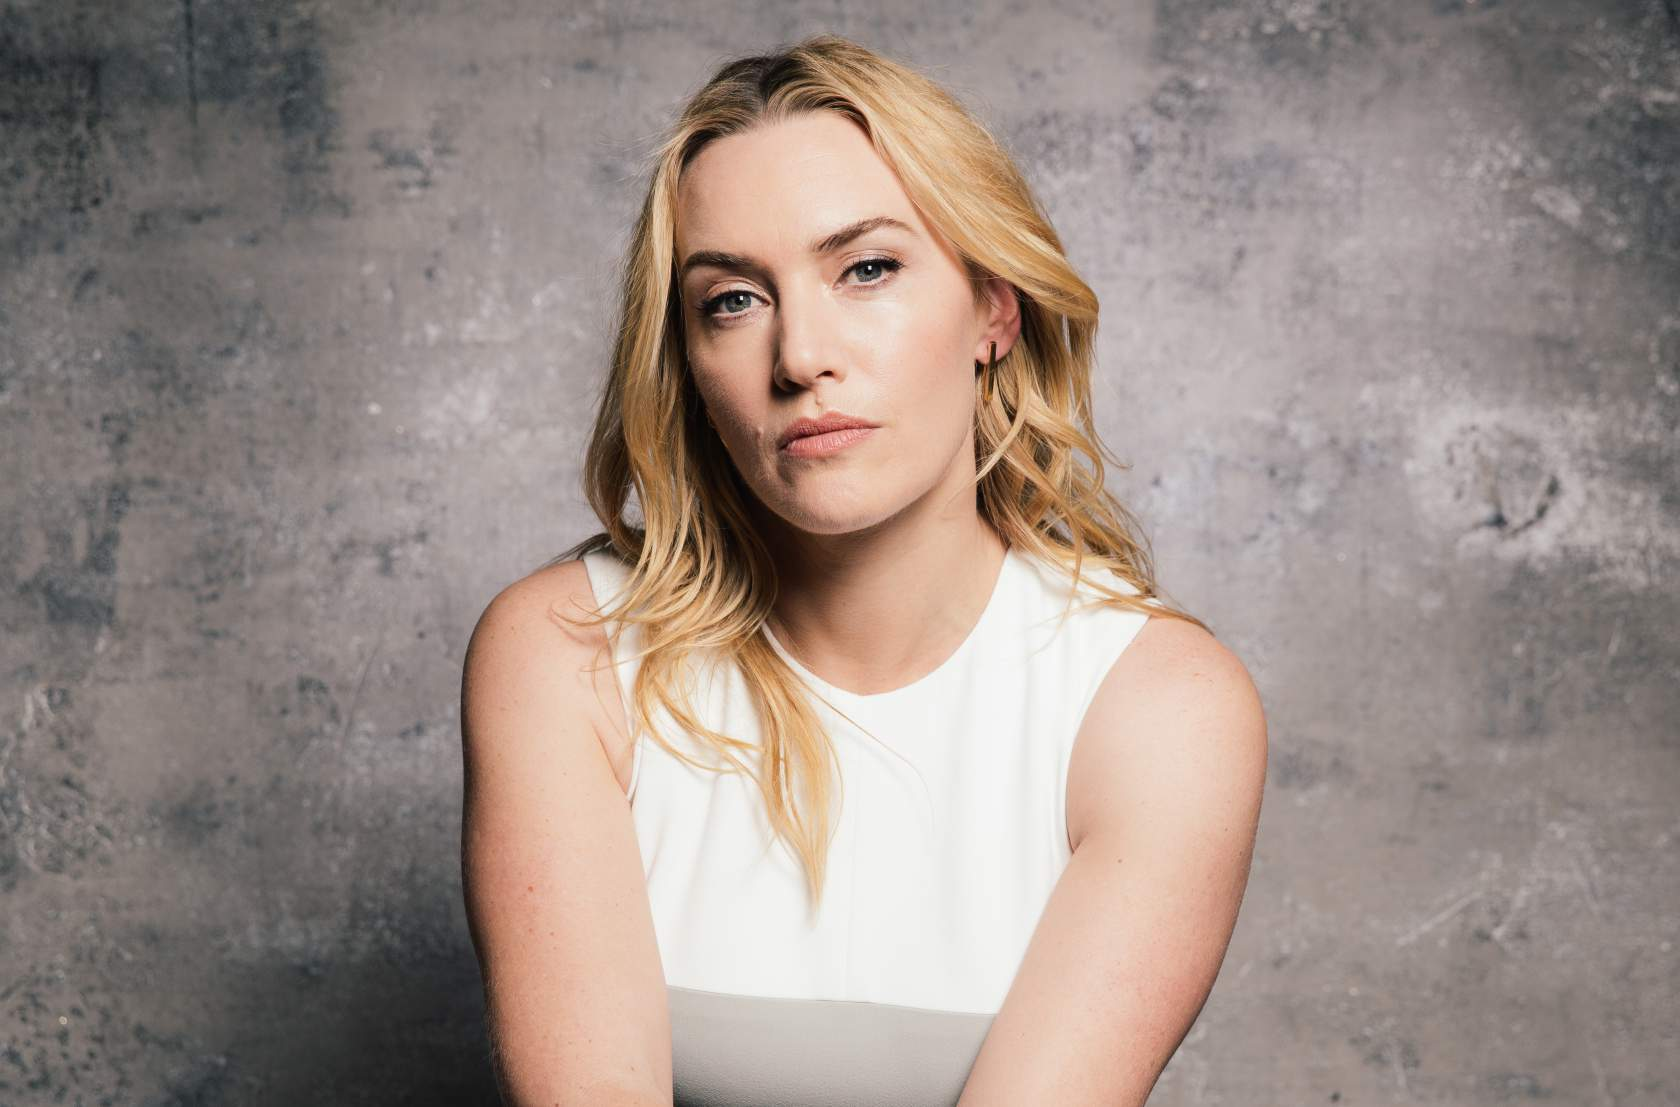 """In this Sunday, March 8, 2015 photo, Kate Winslet poses for a portrait during press day for """"Insurgent"""" at The Four Seasons Hotel, in Los Angeles. (Photo by Casey Curry/Invision/AP)"""